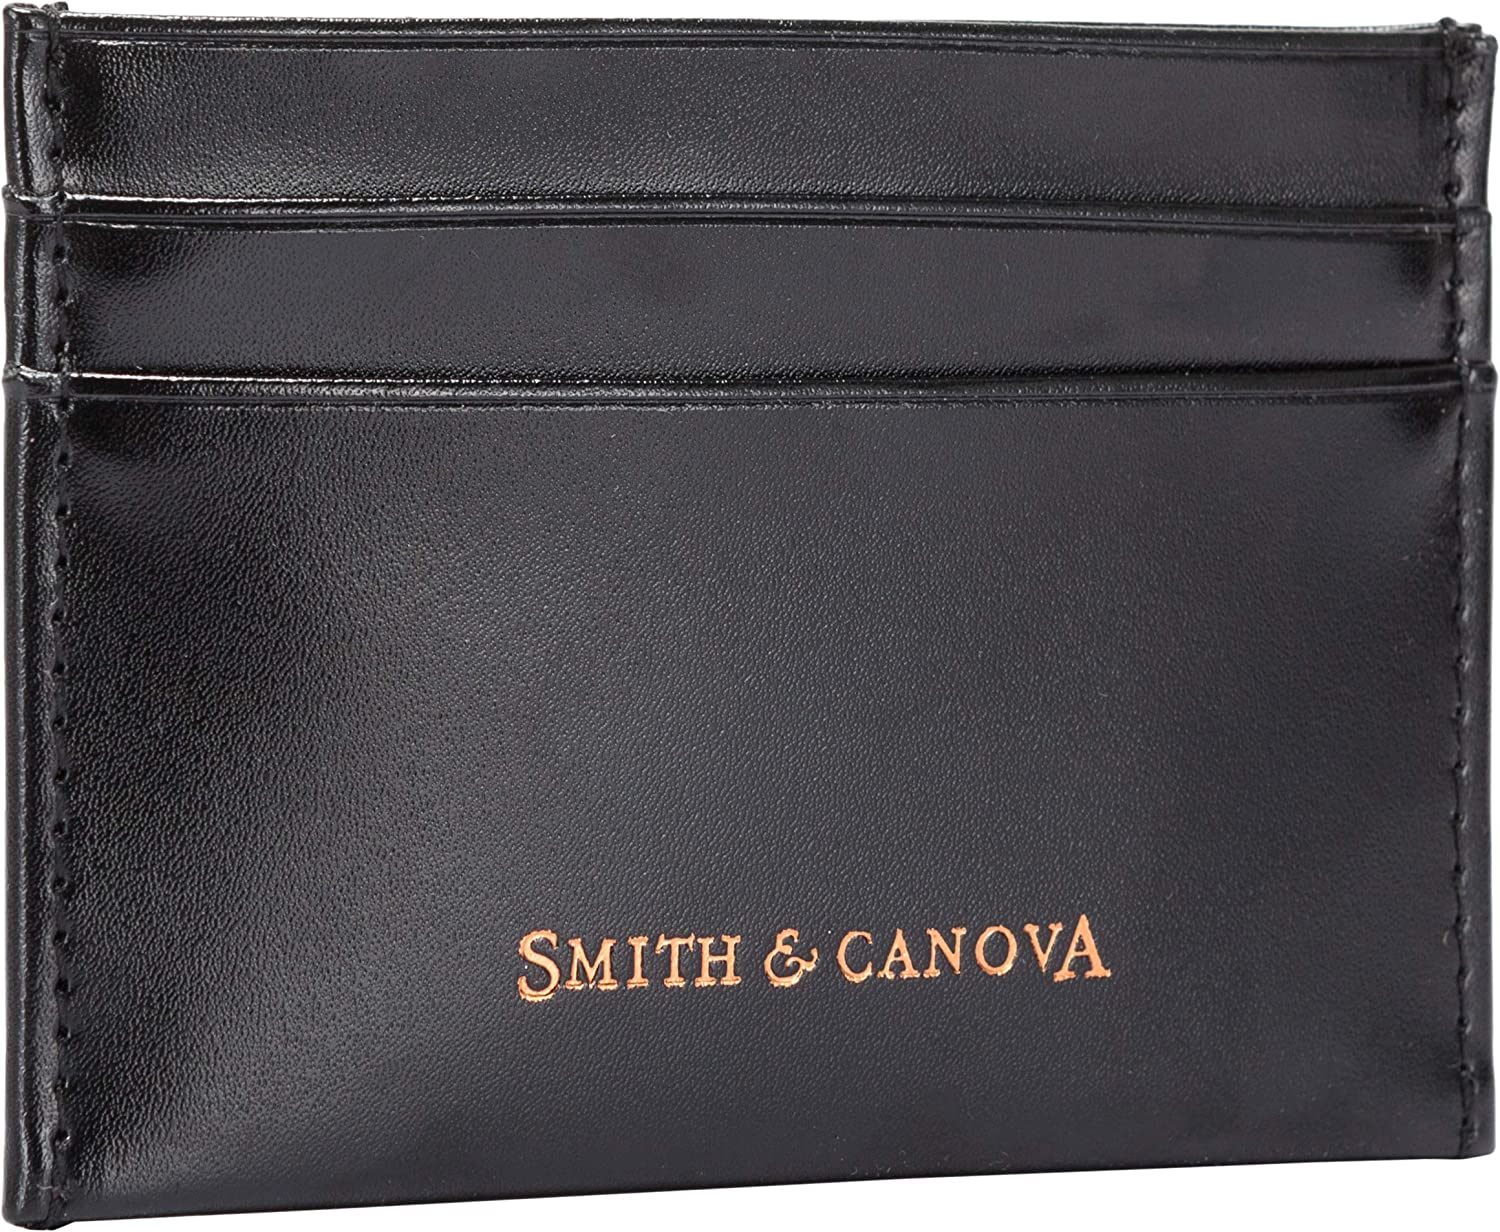 Smith /& Canova Mens Designer Gift Boxed Black Leather Card Wallet 21501